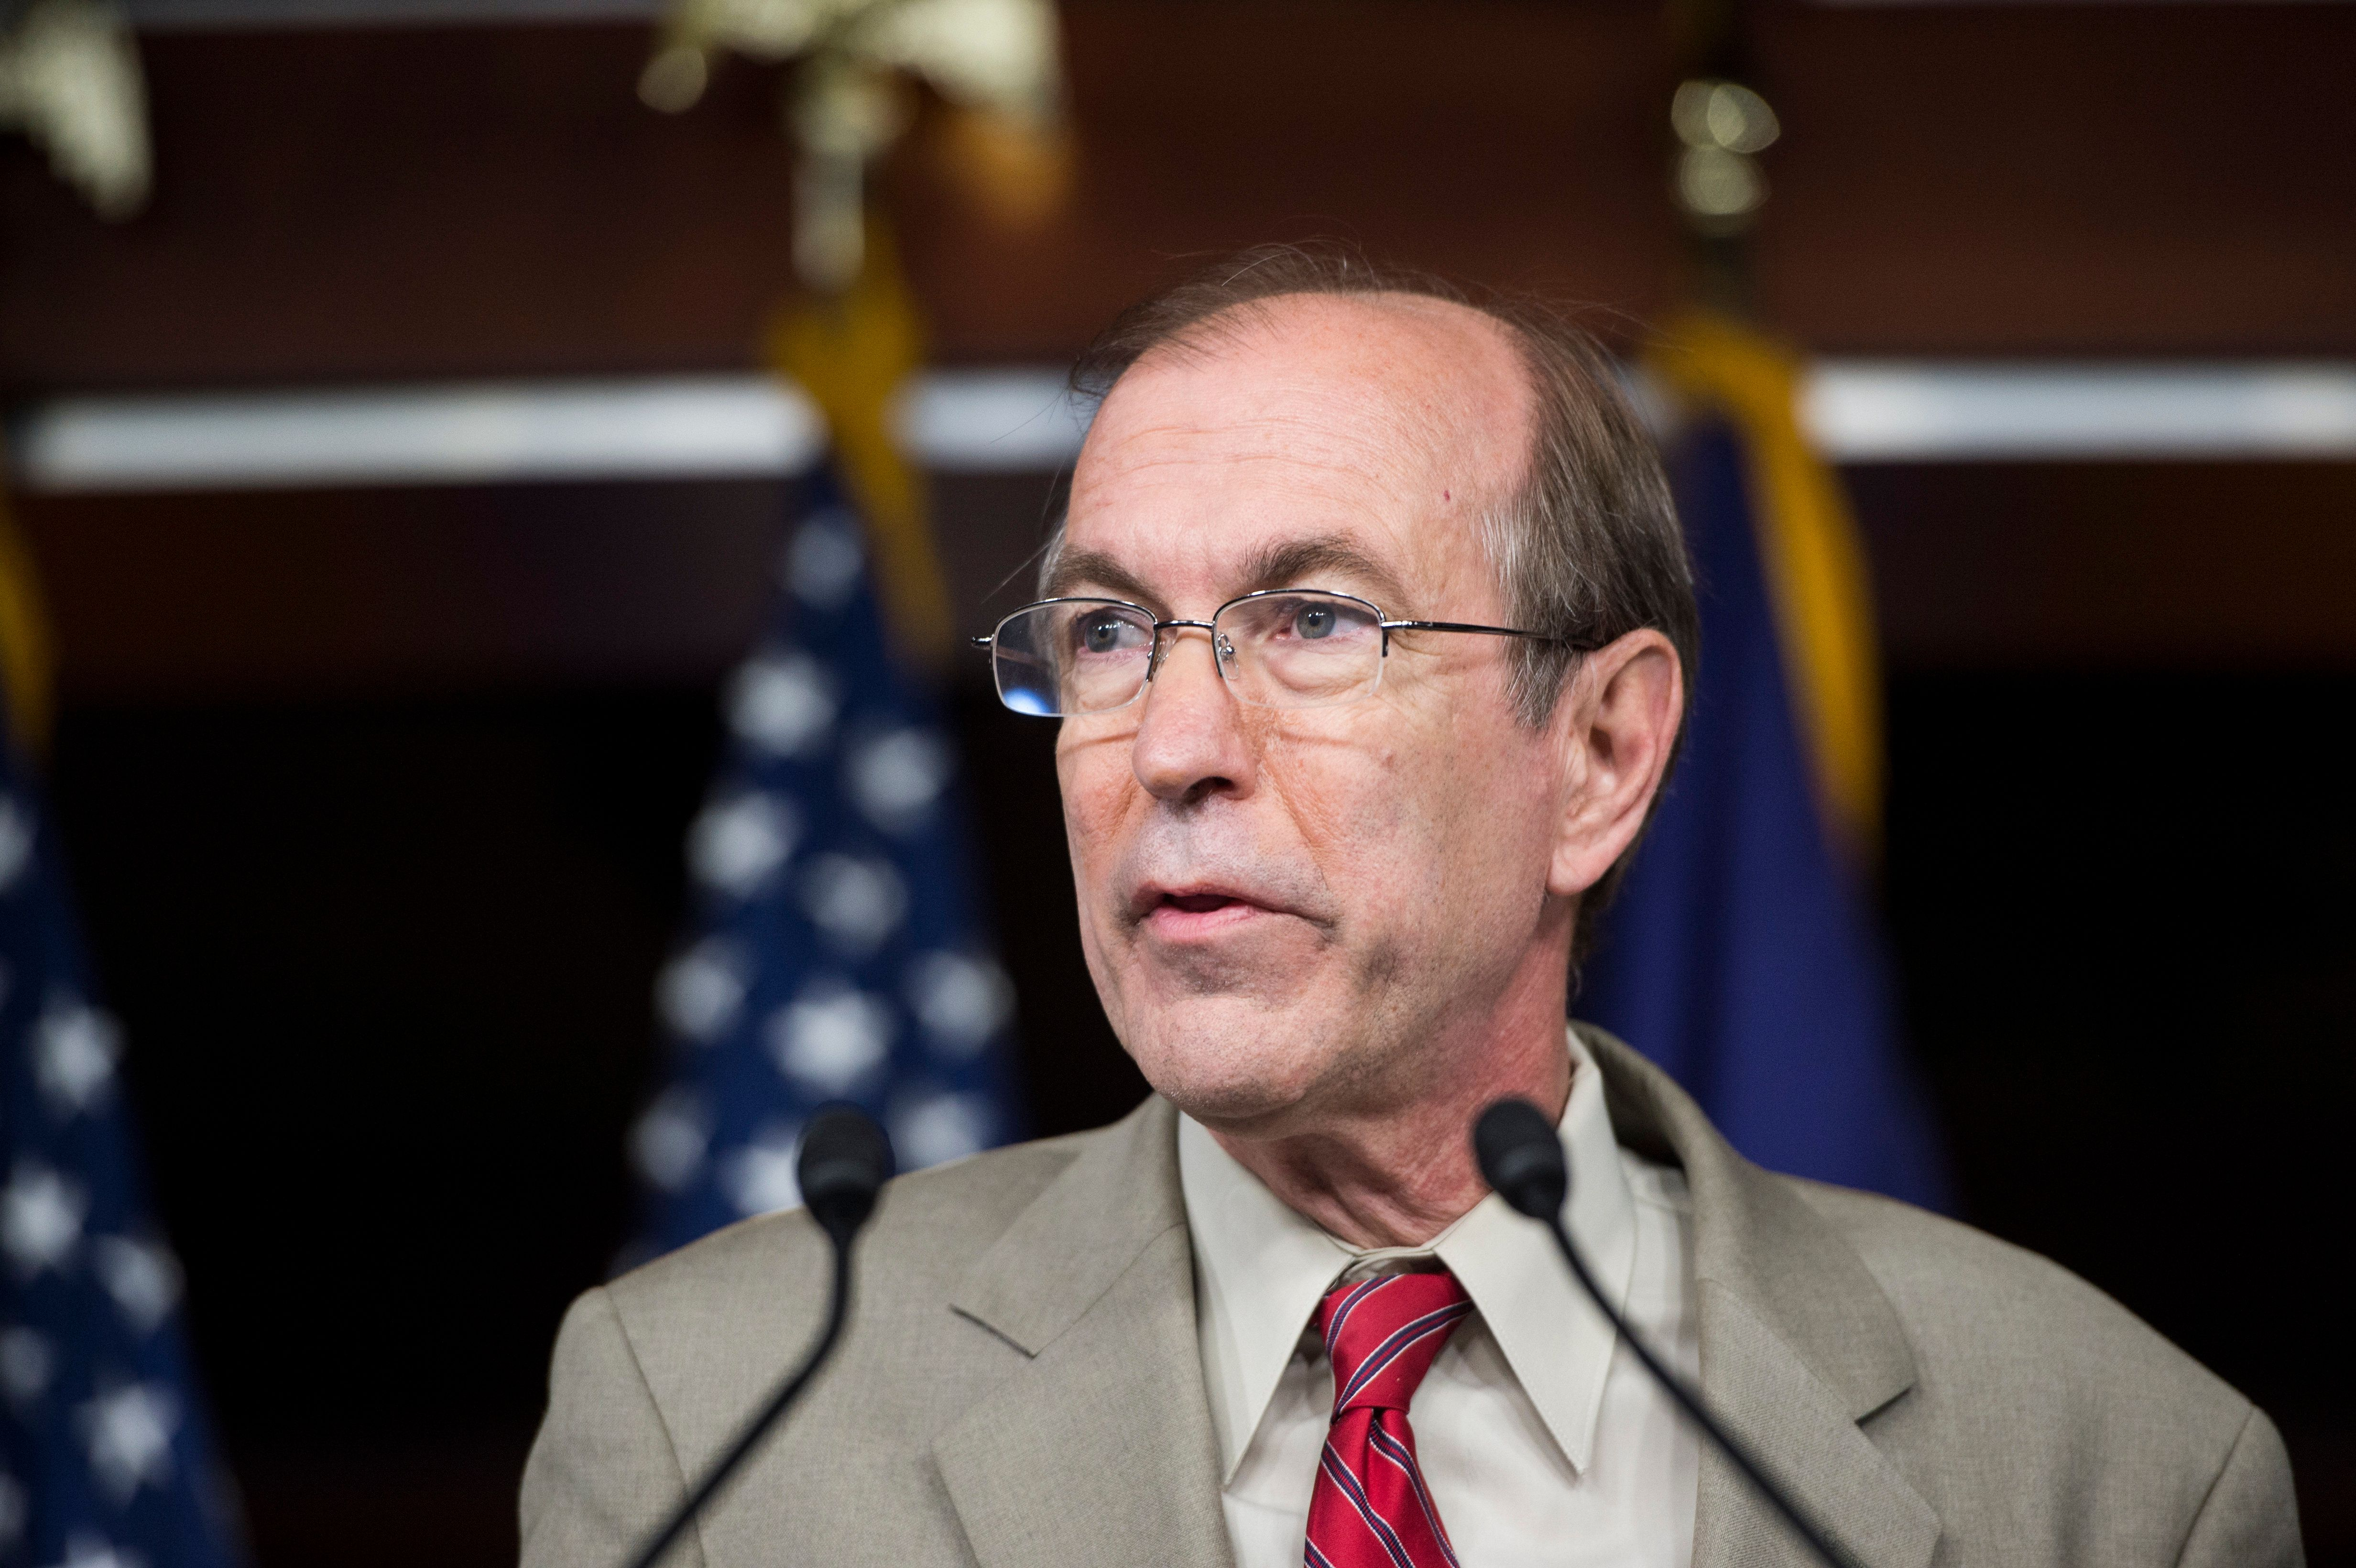 Rep. Scott Garrett (R-N.J.) lost a significant amount of money from Wall Street donors after he made his remarks.